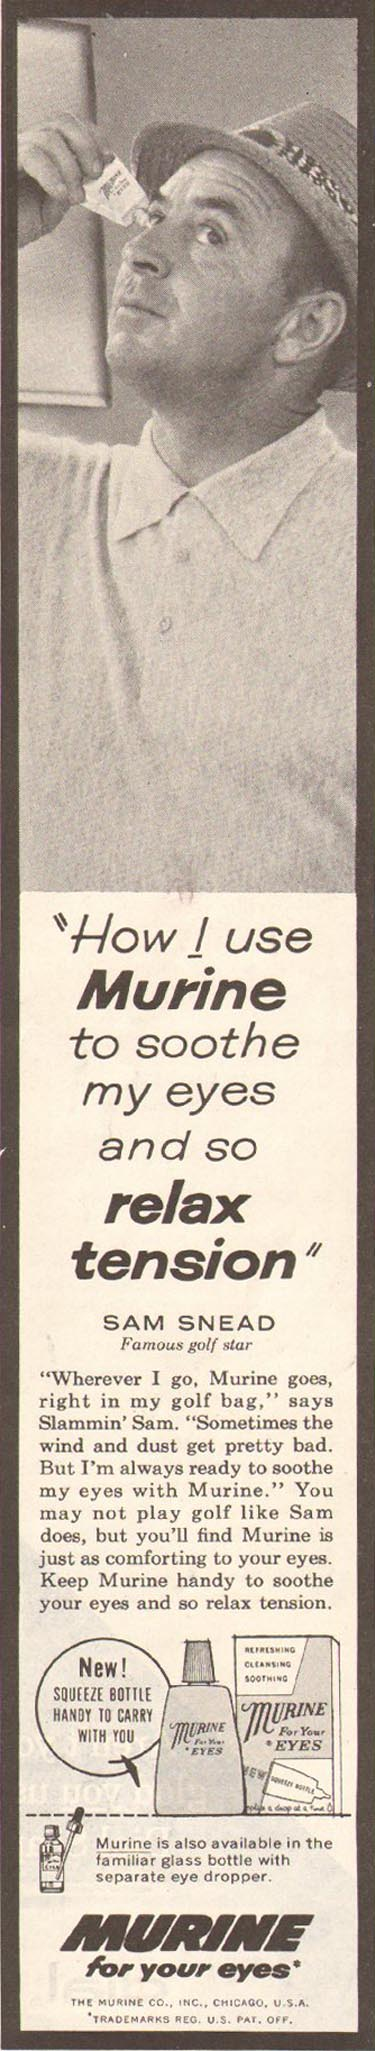 MURINE EYE DROPS SATURDAY EVENING POST 06/11/1960 p. 58